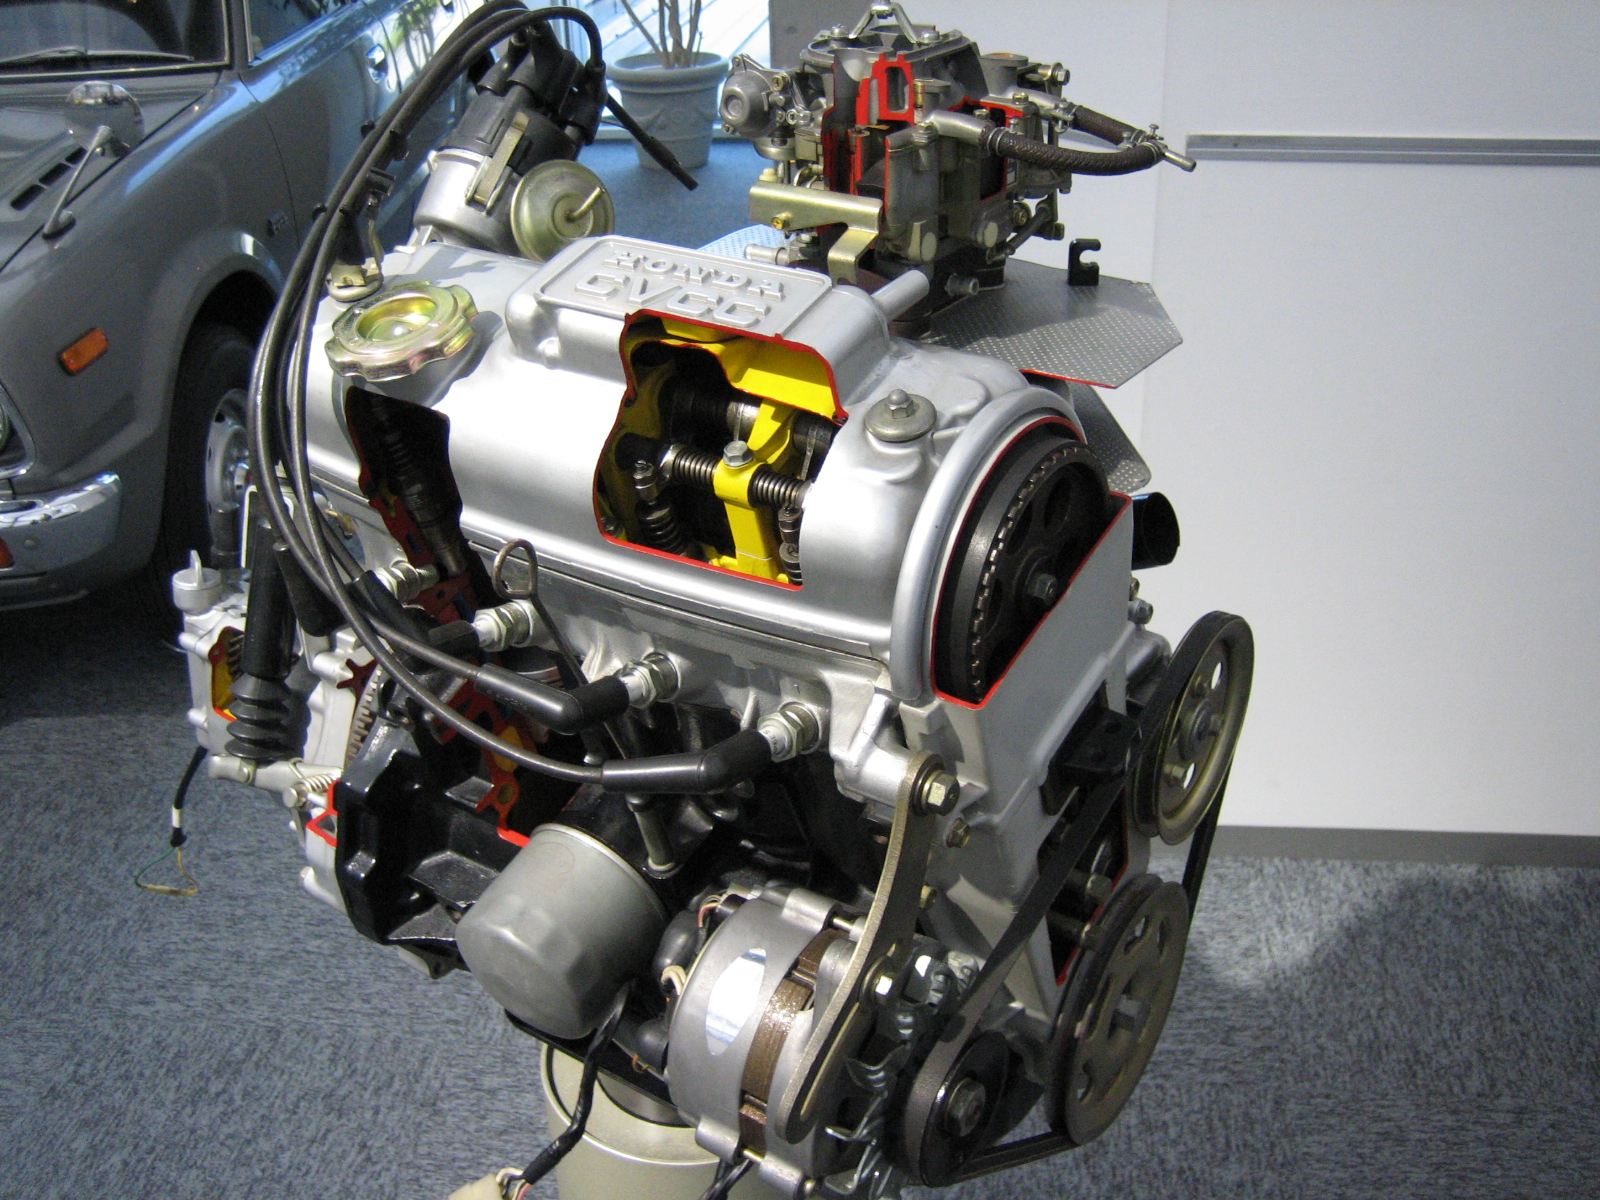 CVCC engine